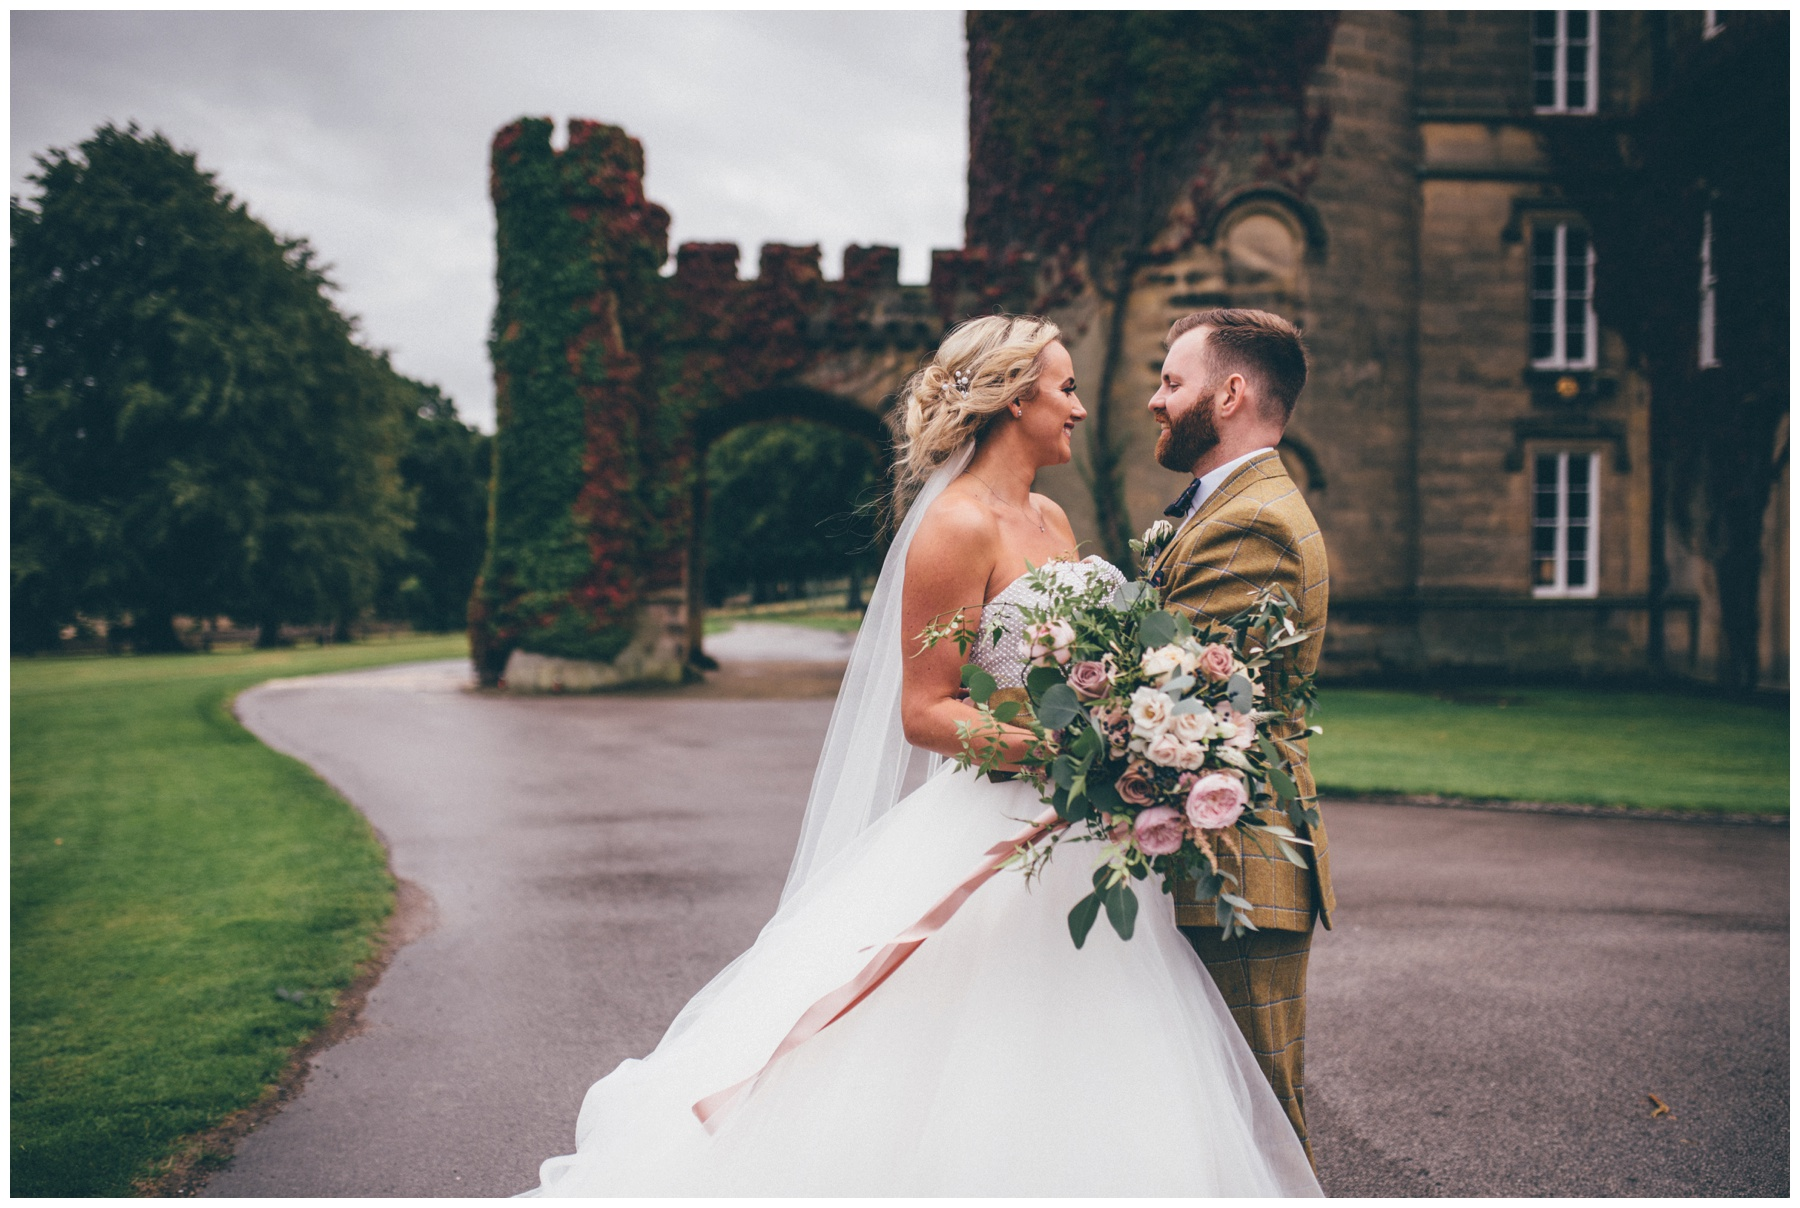 Bride and groom cuddle outside their gorgeous Yorkshire wedding venue, Swinton Park Estate.